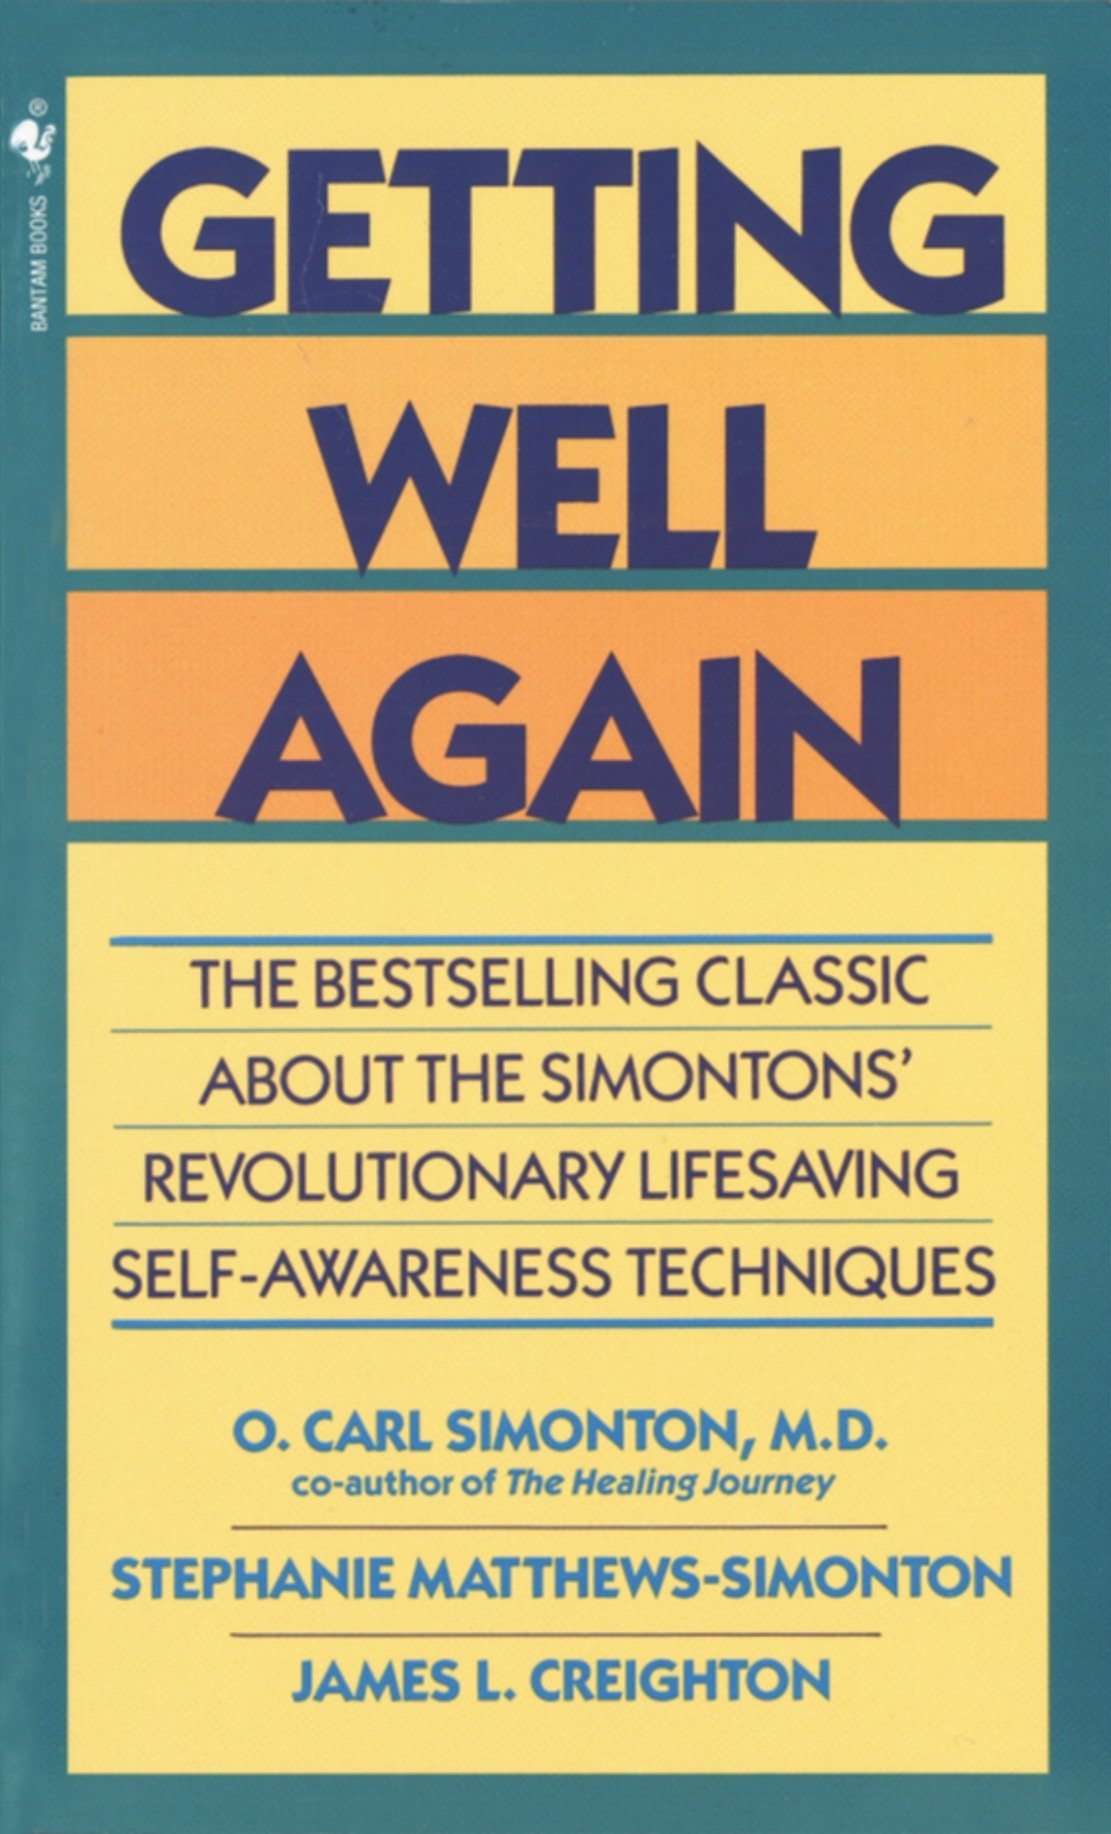 Getting Well Again: The Bestselling Classic About the Simontons ...